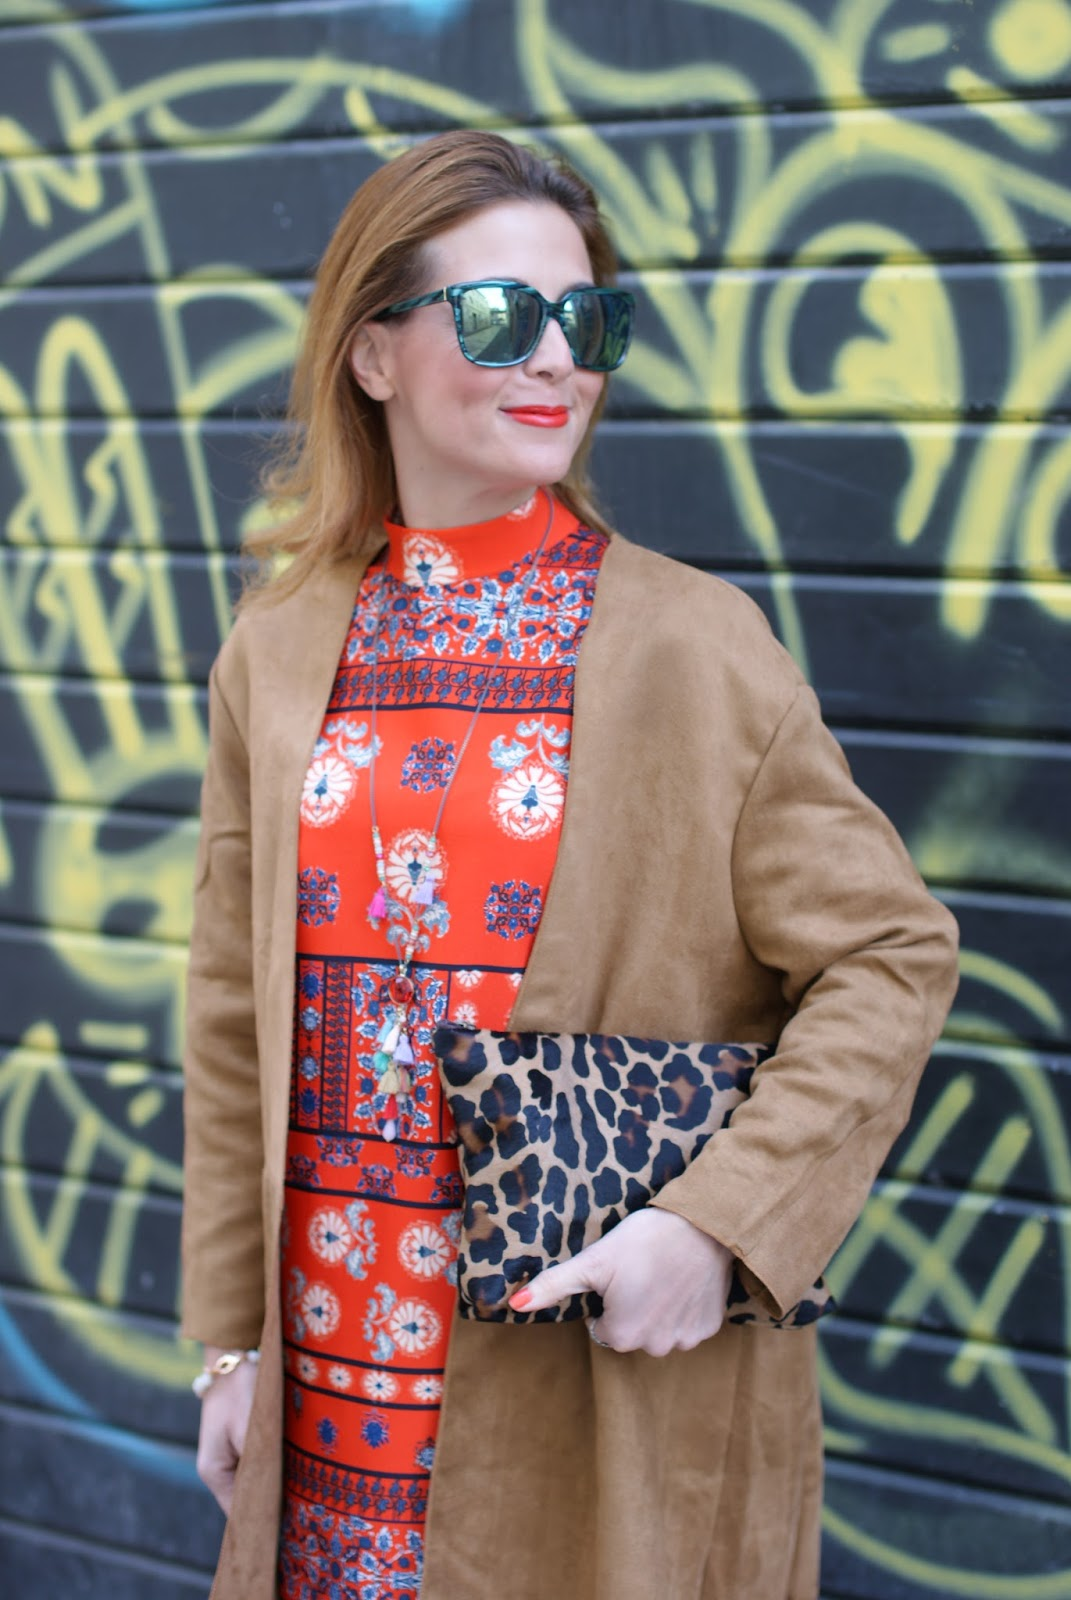 Suedette fringed coat from Yoins and Hype Glass sunglasses on Fashion and Cookies fashion blog, fashion blogger style